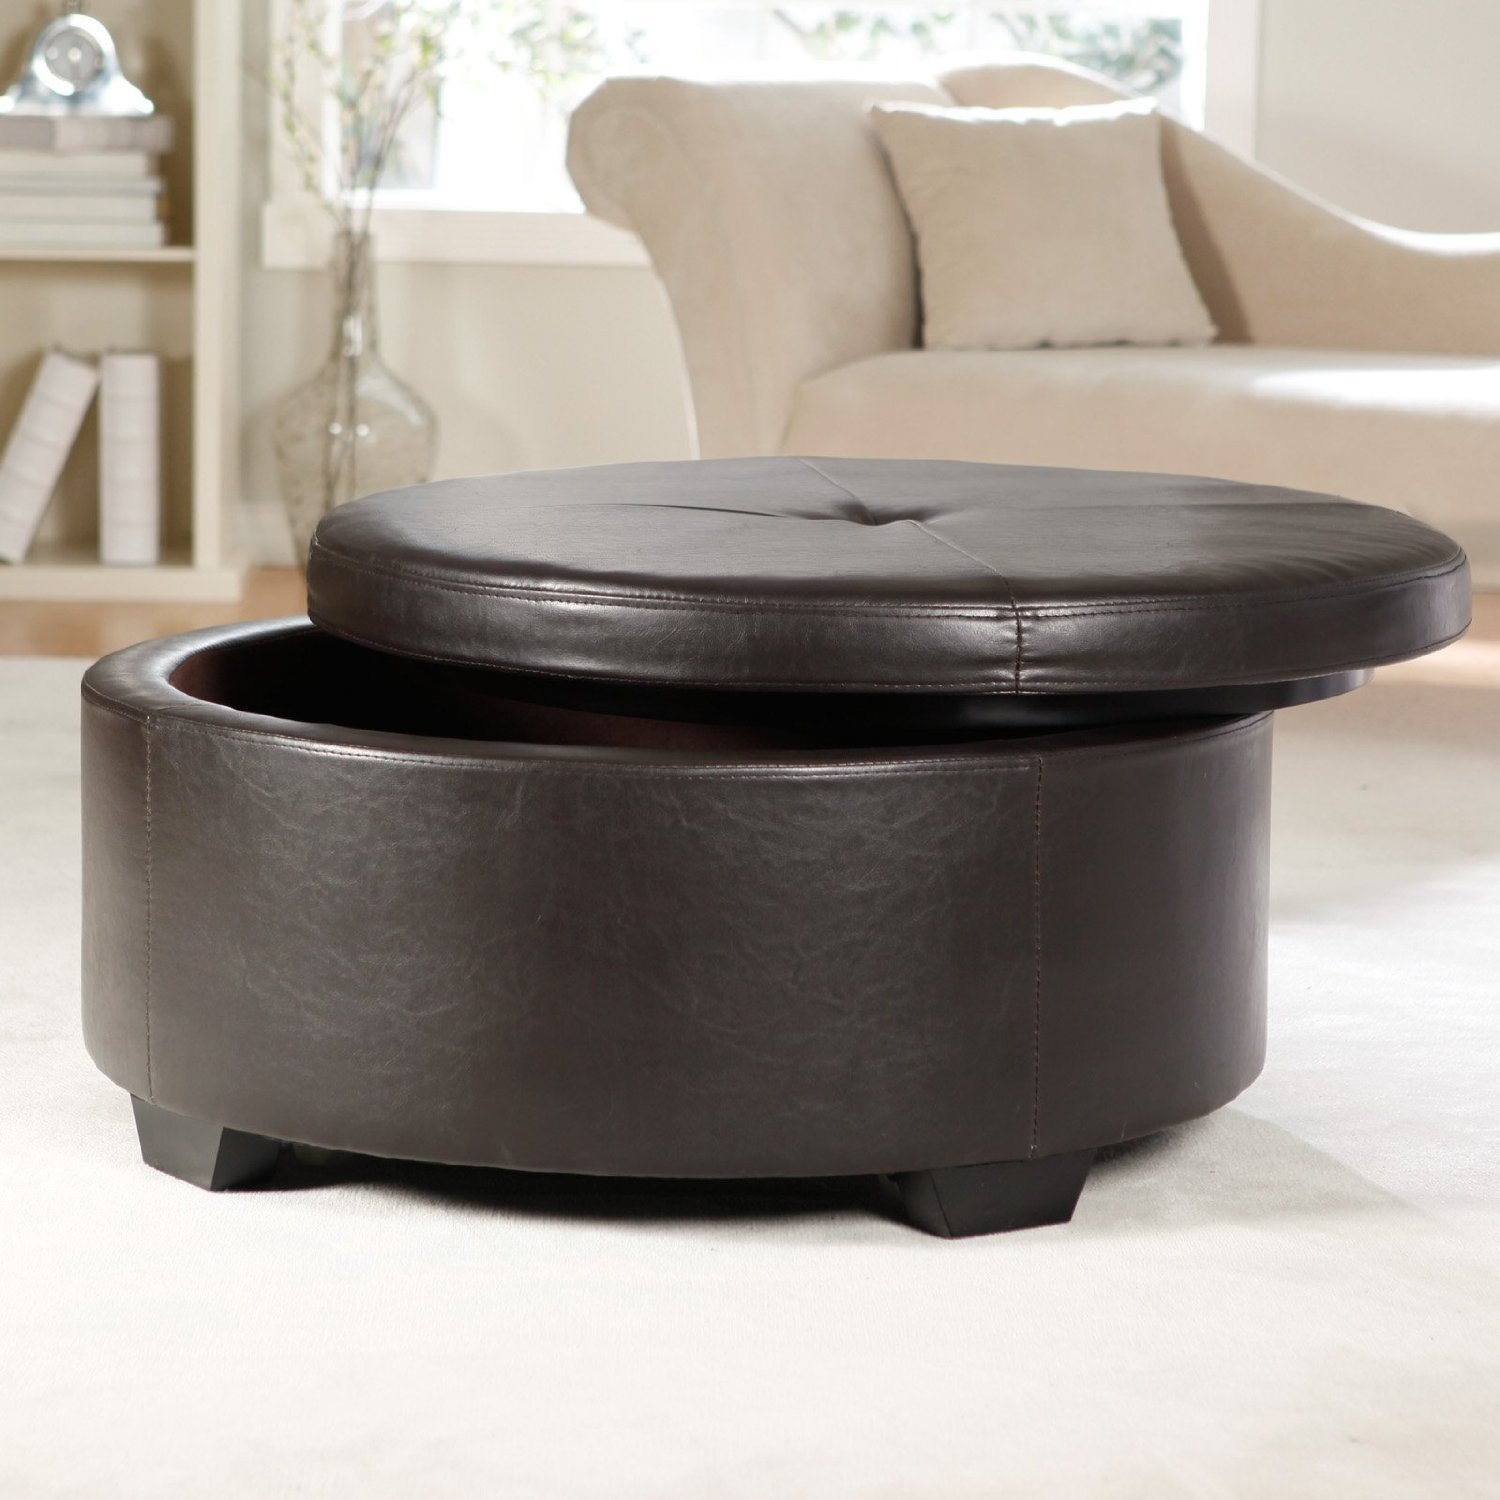 Round Padded Coffee Table Upholstered Coffee Tables Tufted Leather Padded Ottoman With Drawers Furniture (View 8 of 10)